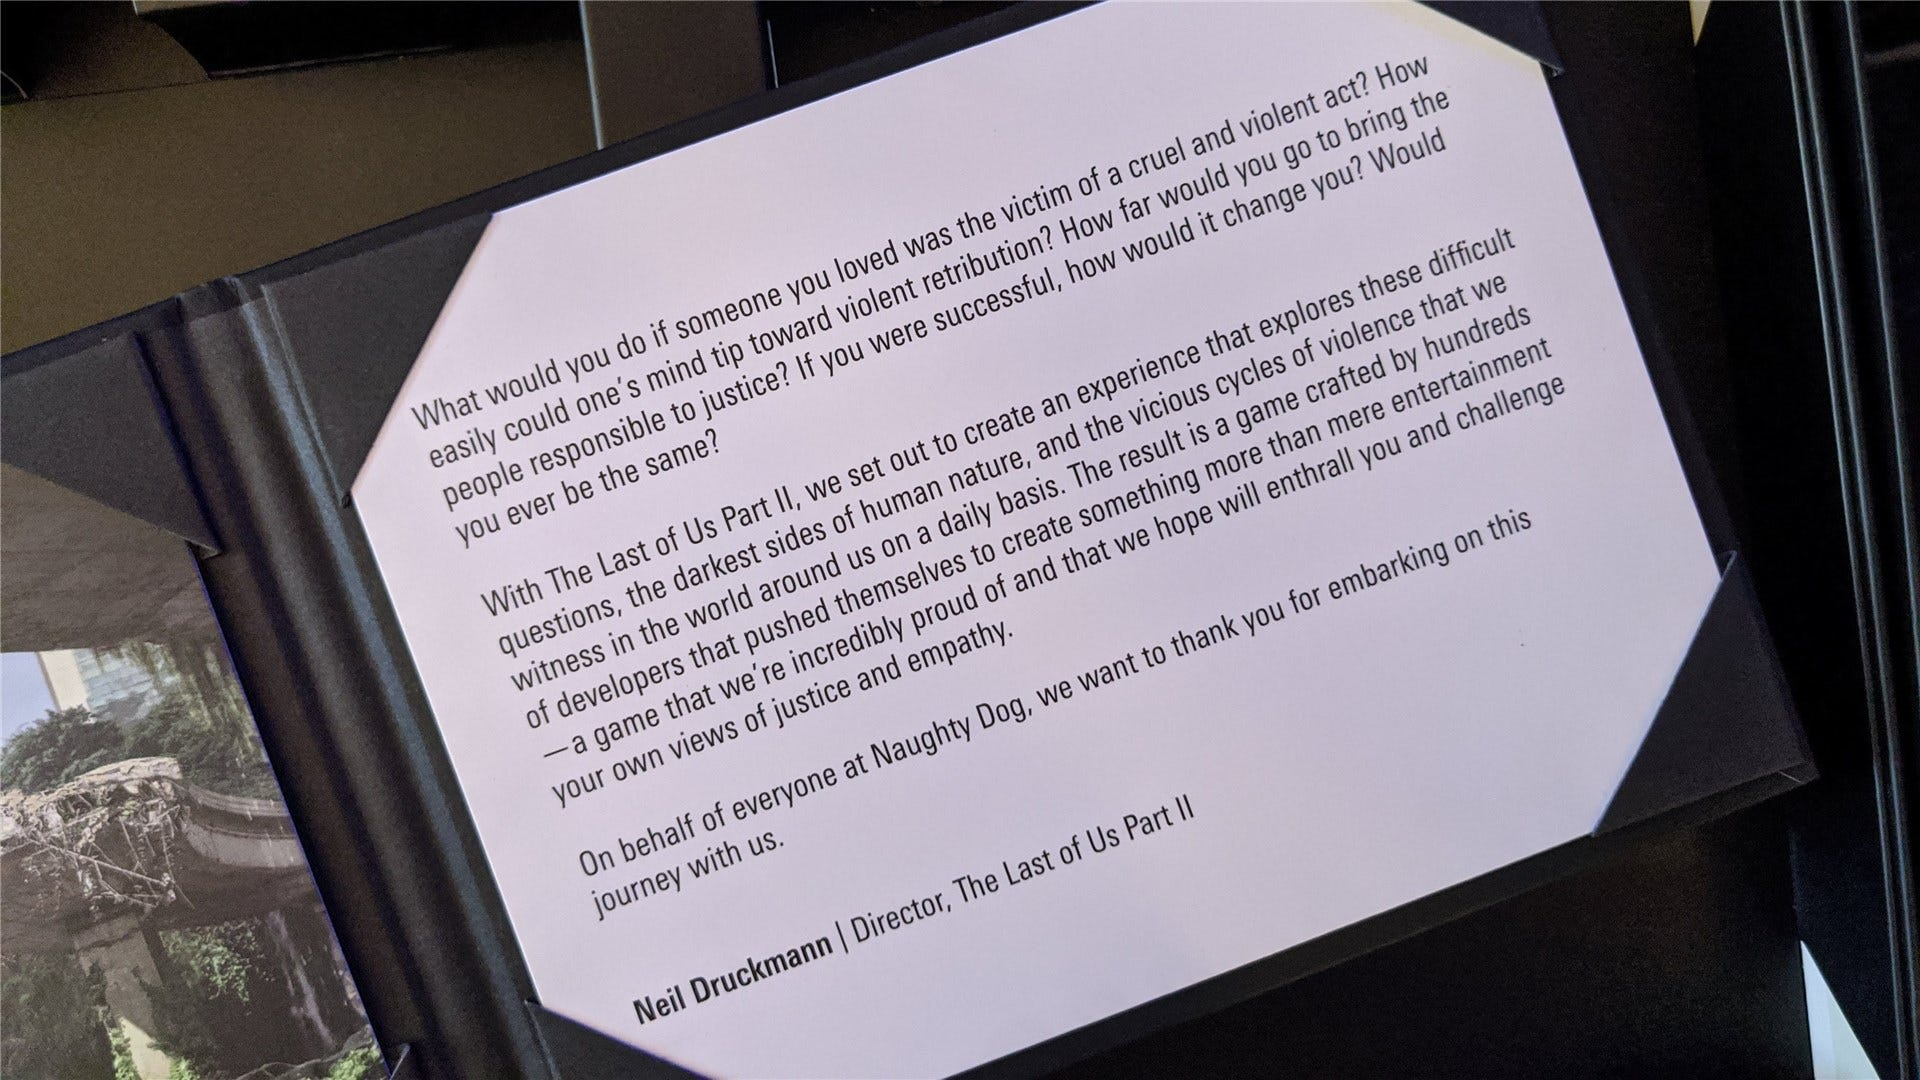 A close-up of the thank you letter, written by Naughty Dog director Neil Druckman